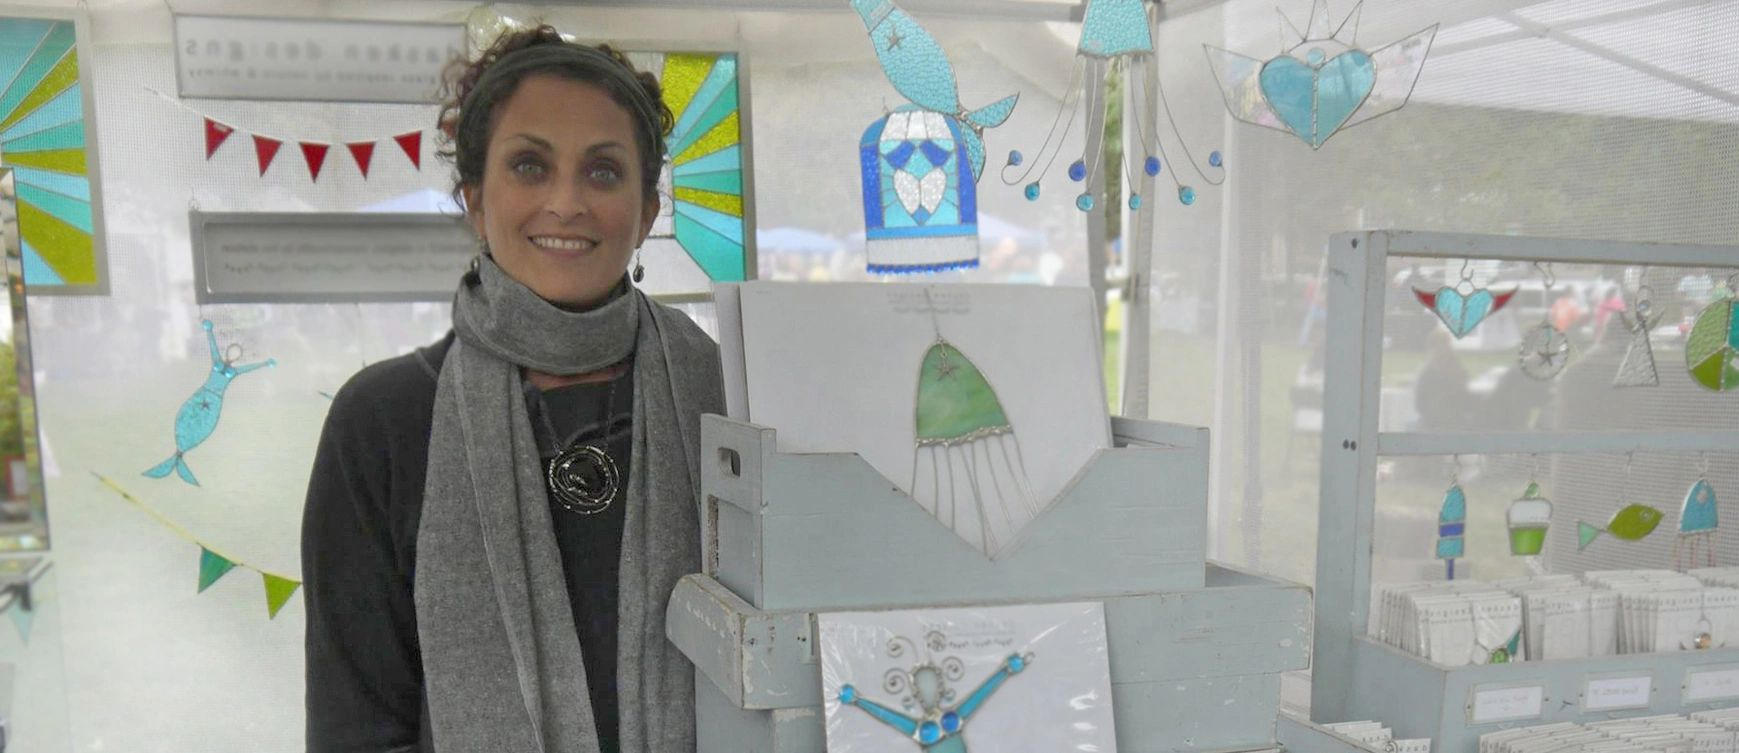 Liza Abelson from Dasken Designs at an art festival